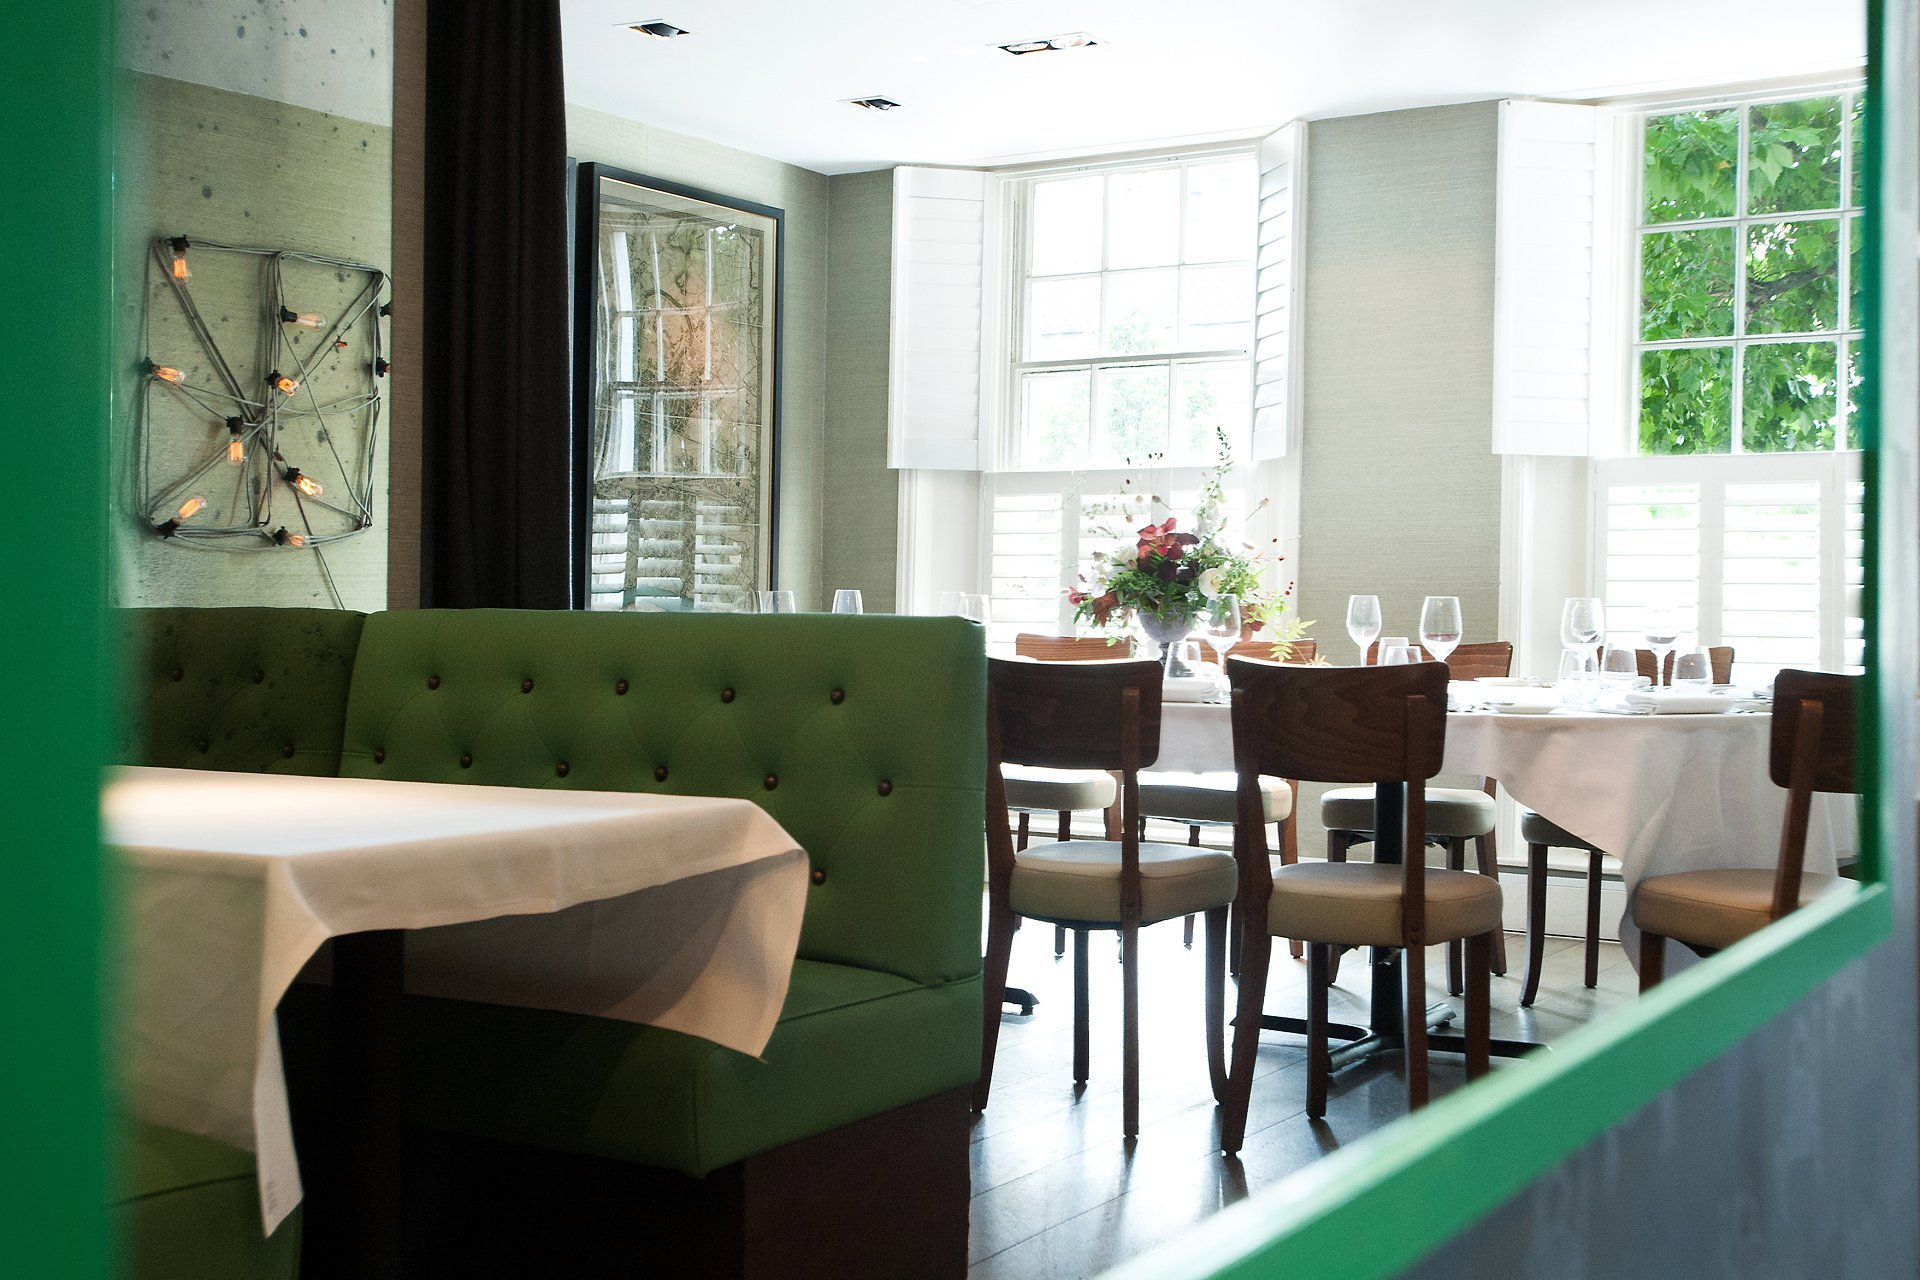 The private dining room at Medlar restaurant on the first floor with seating for up to 25 people is a fabulous Chelsea venue for small weddings, anniversaries and birthdays and has an award-winning pedigree and a very loyal following